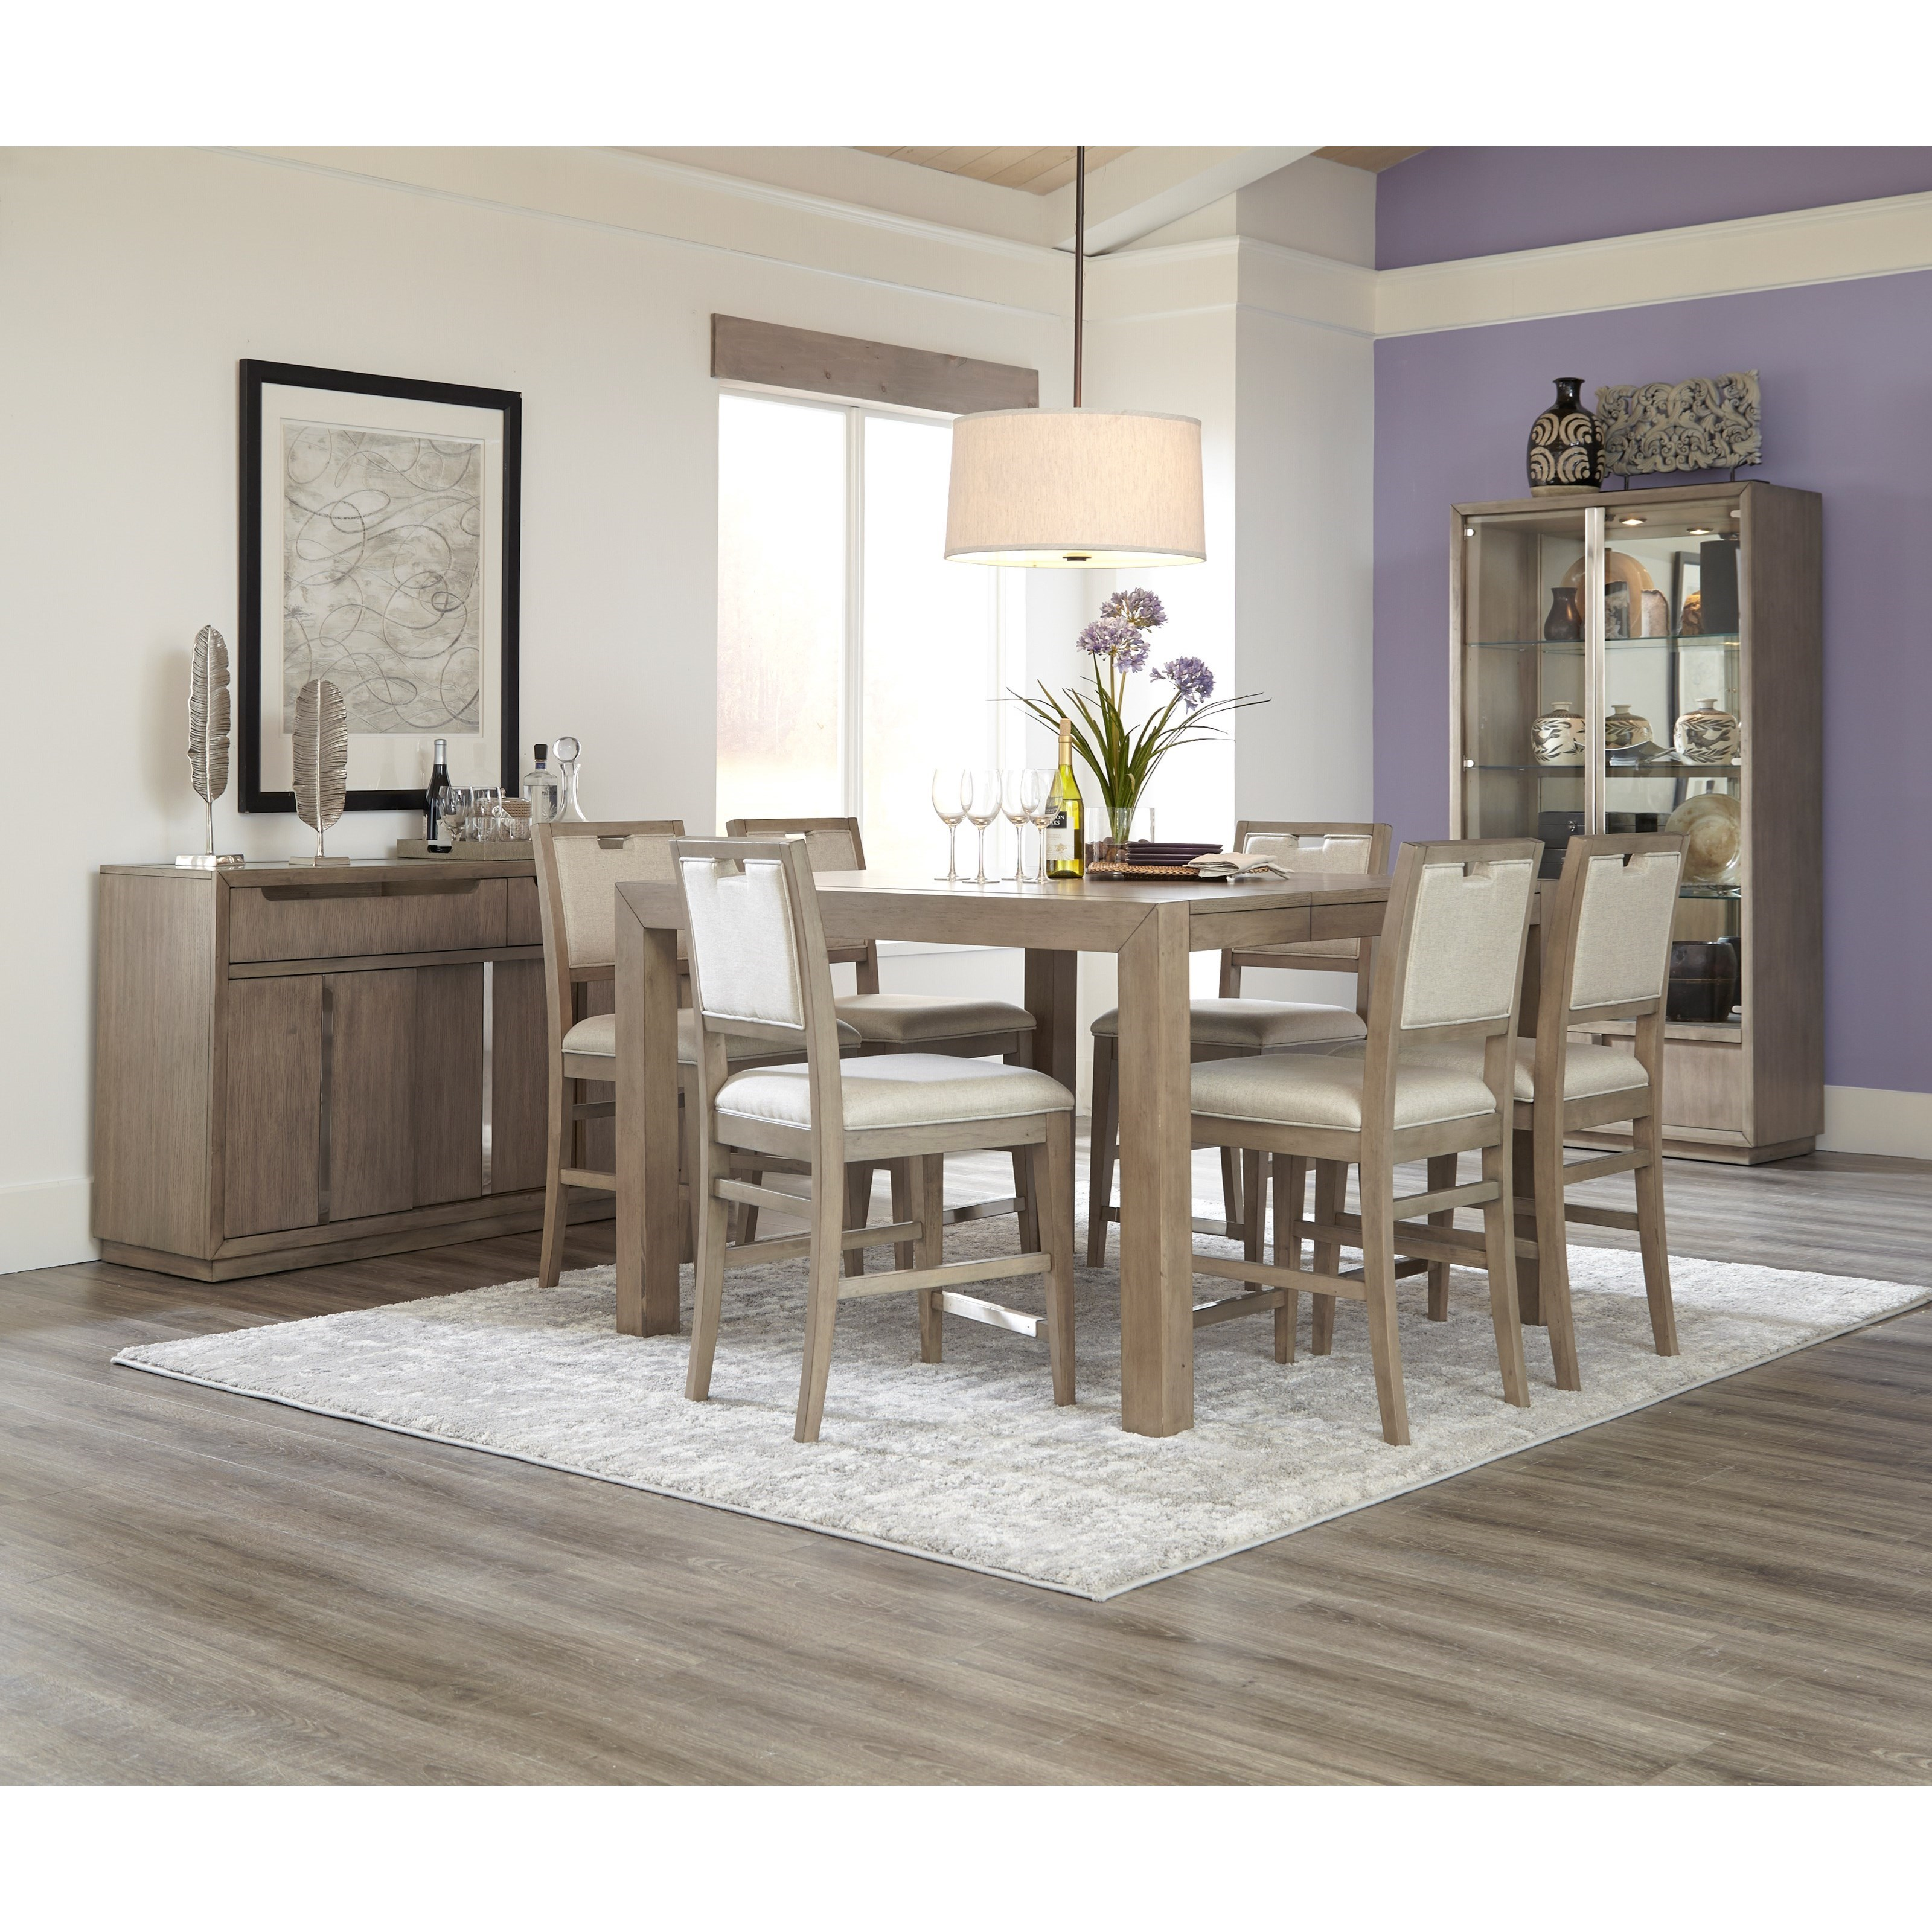 Melbourne Dining Room Group by Klaussner International at Catalog Outlet